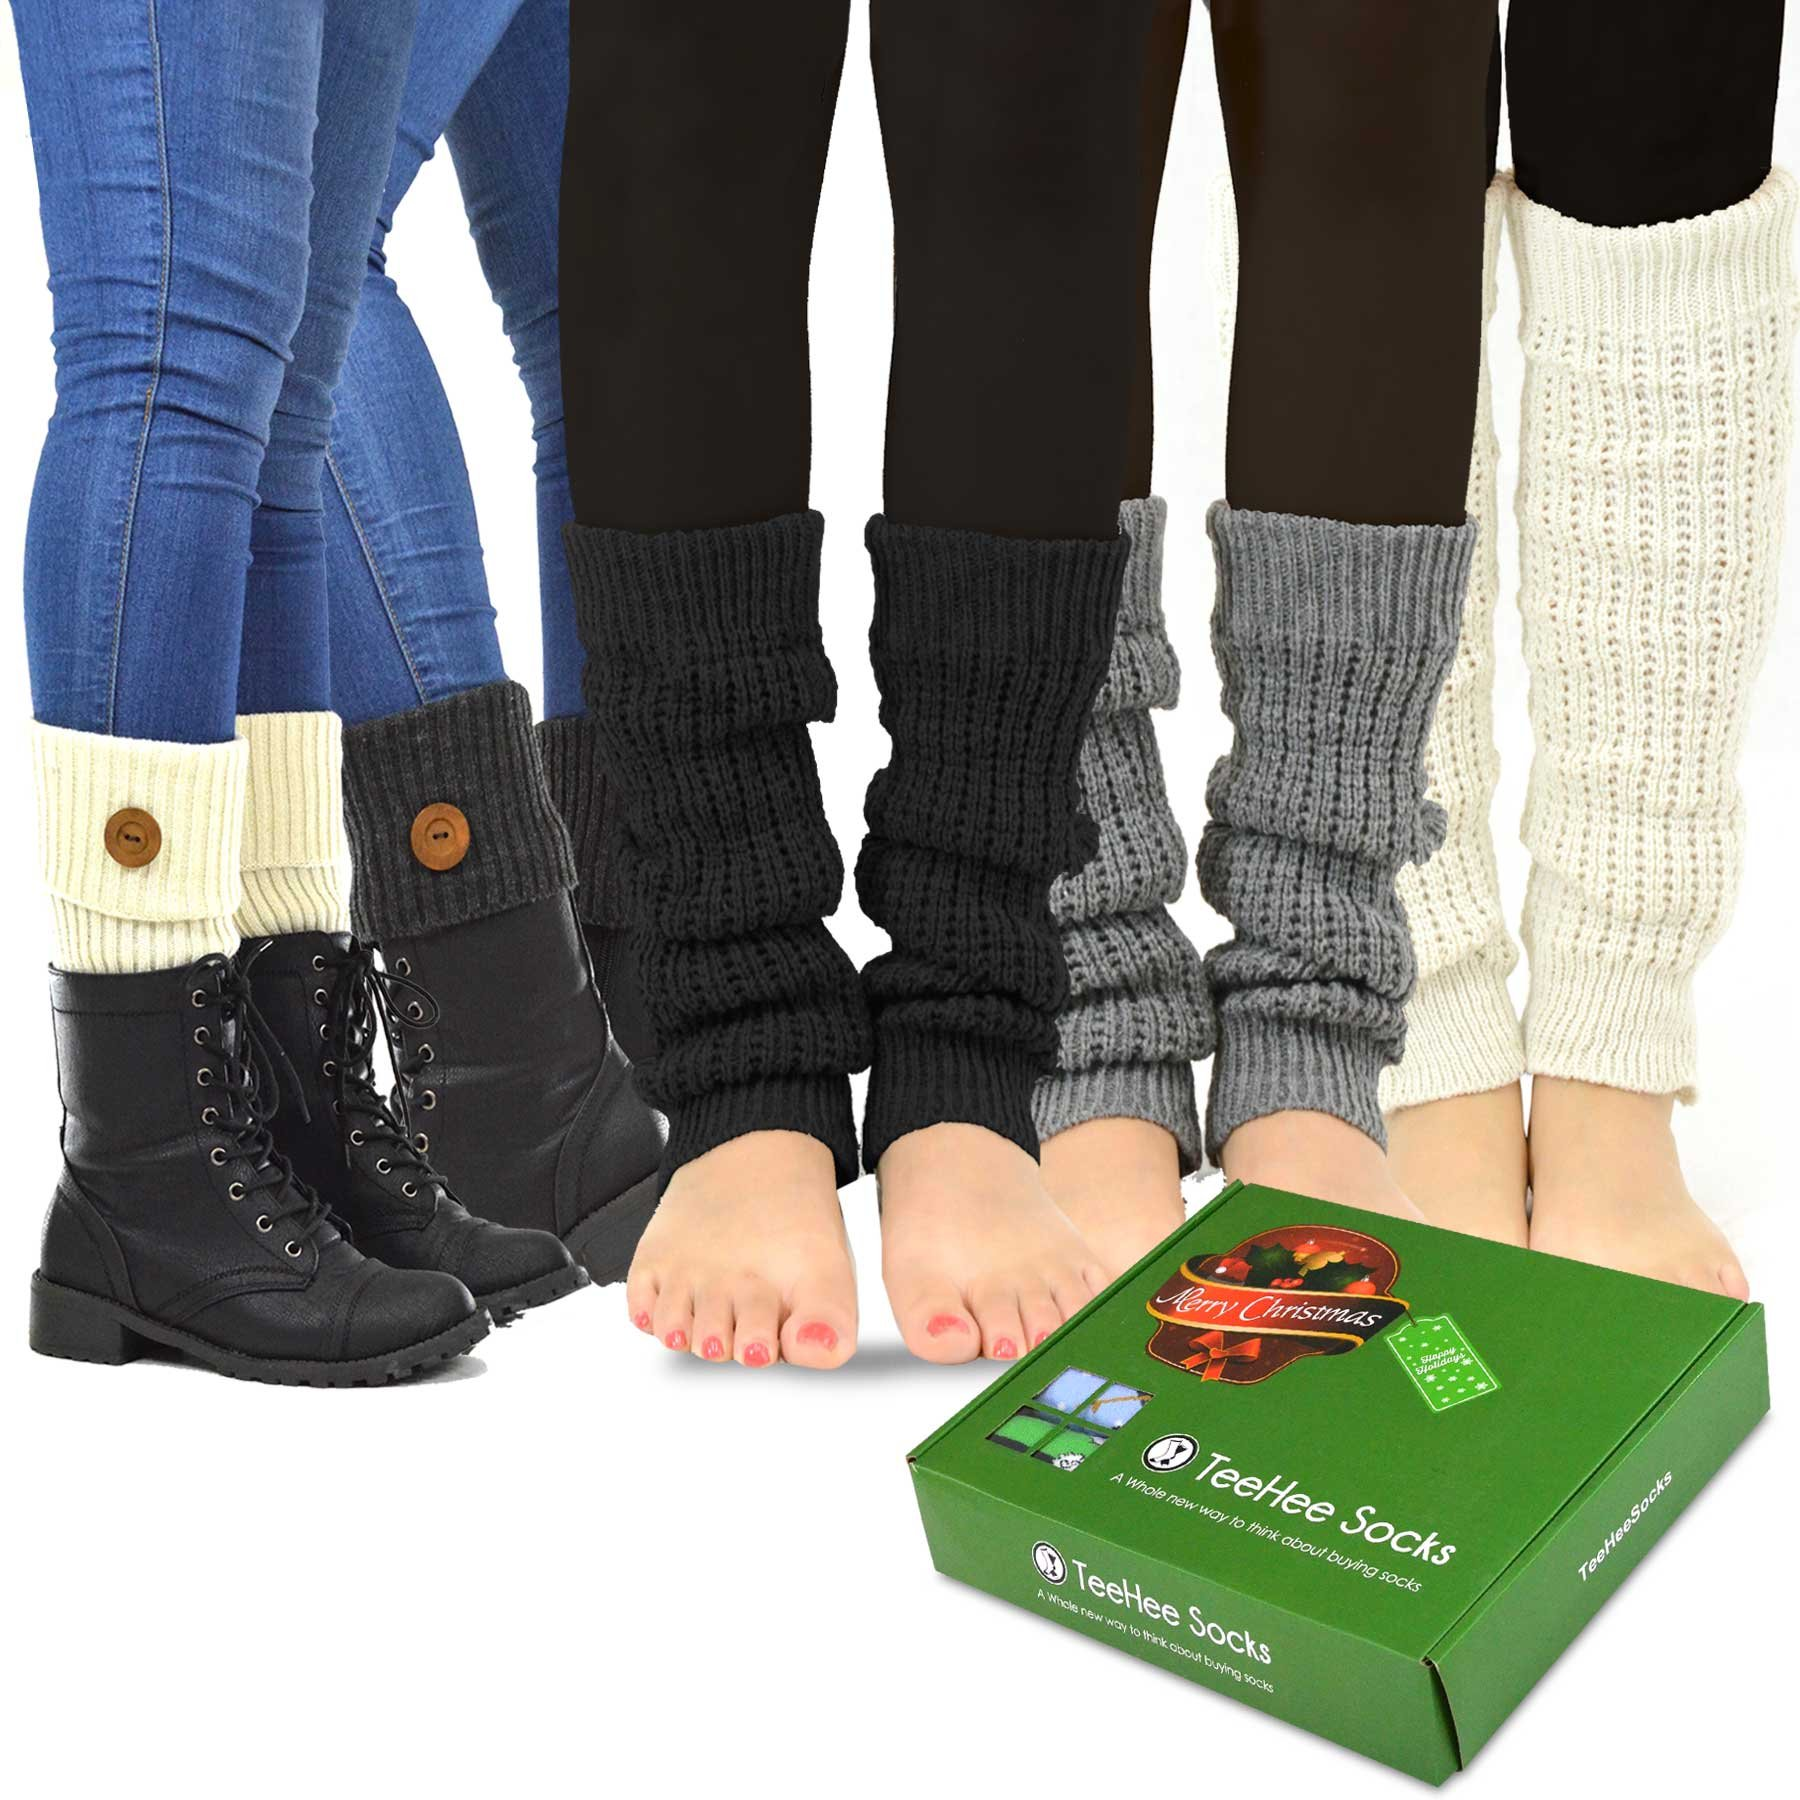 TeeHee Women's Fashion Leg Warmers and Boot Toppers 5- Pack with Gift Box Set (Style-A)